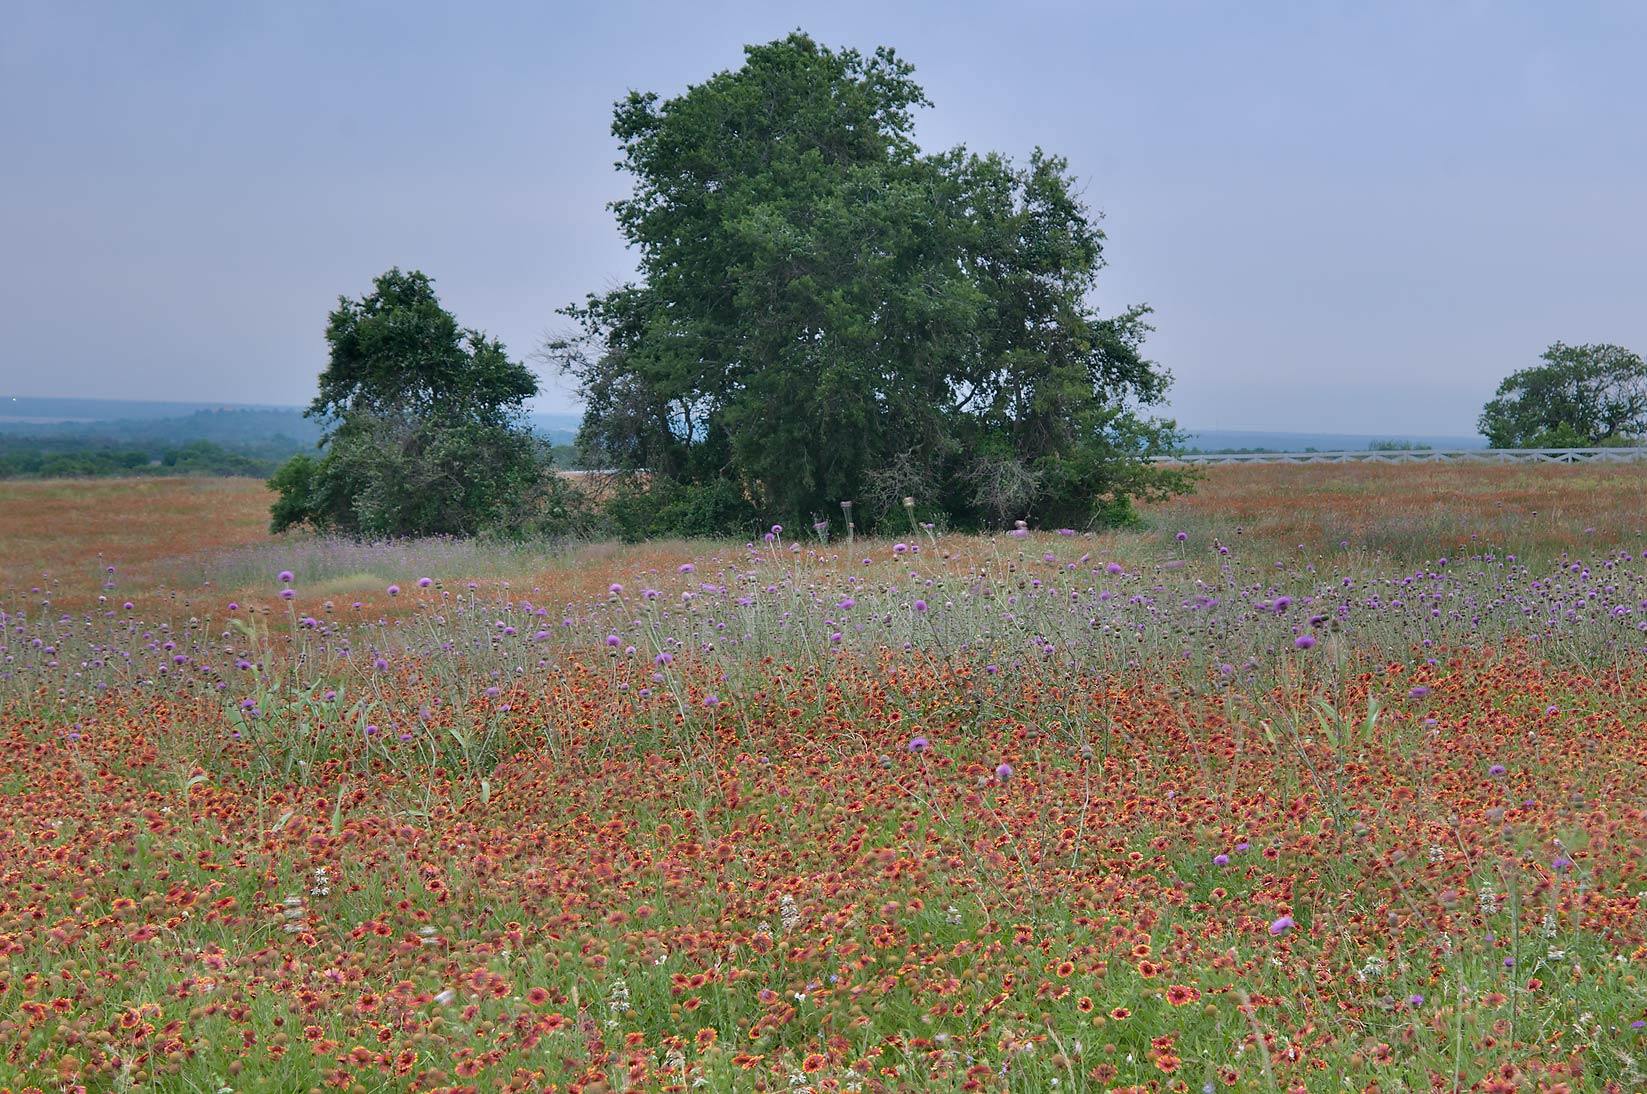 Field of firewheel flowers near Rd. FM 390 south from Lake Somerville. Texas